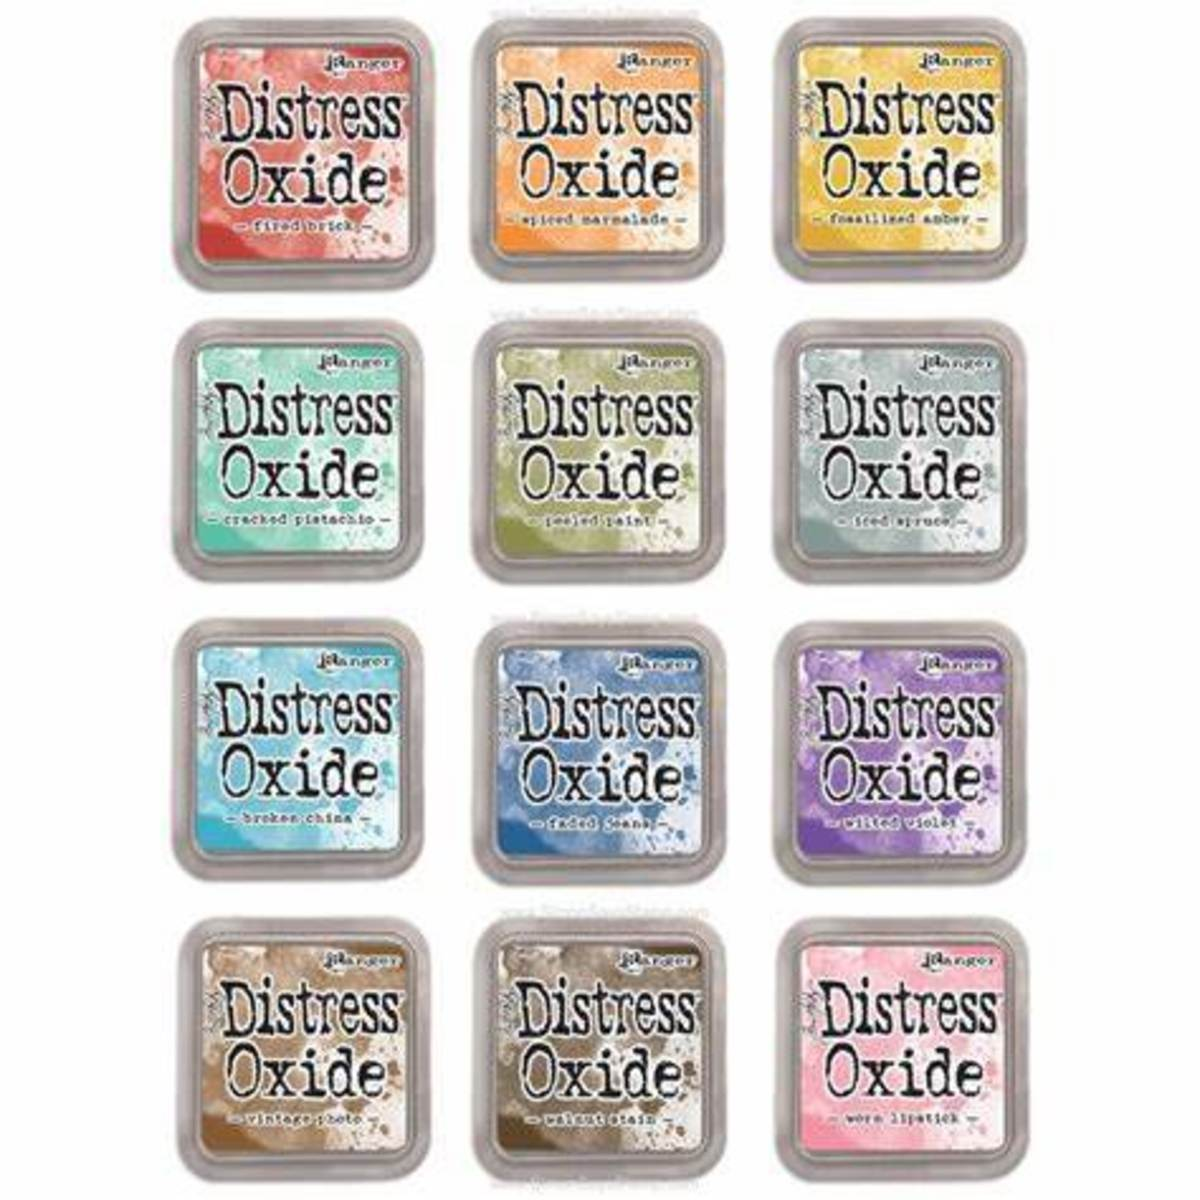 """Distress oxide inks are known by their gret case. They come only in 3"""" by 3"""" size"""